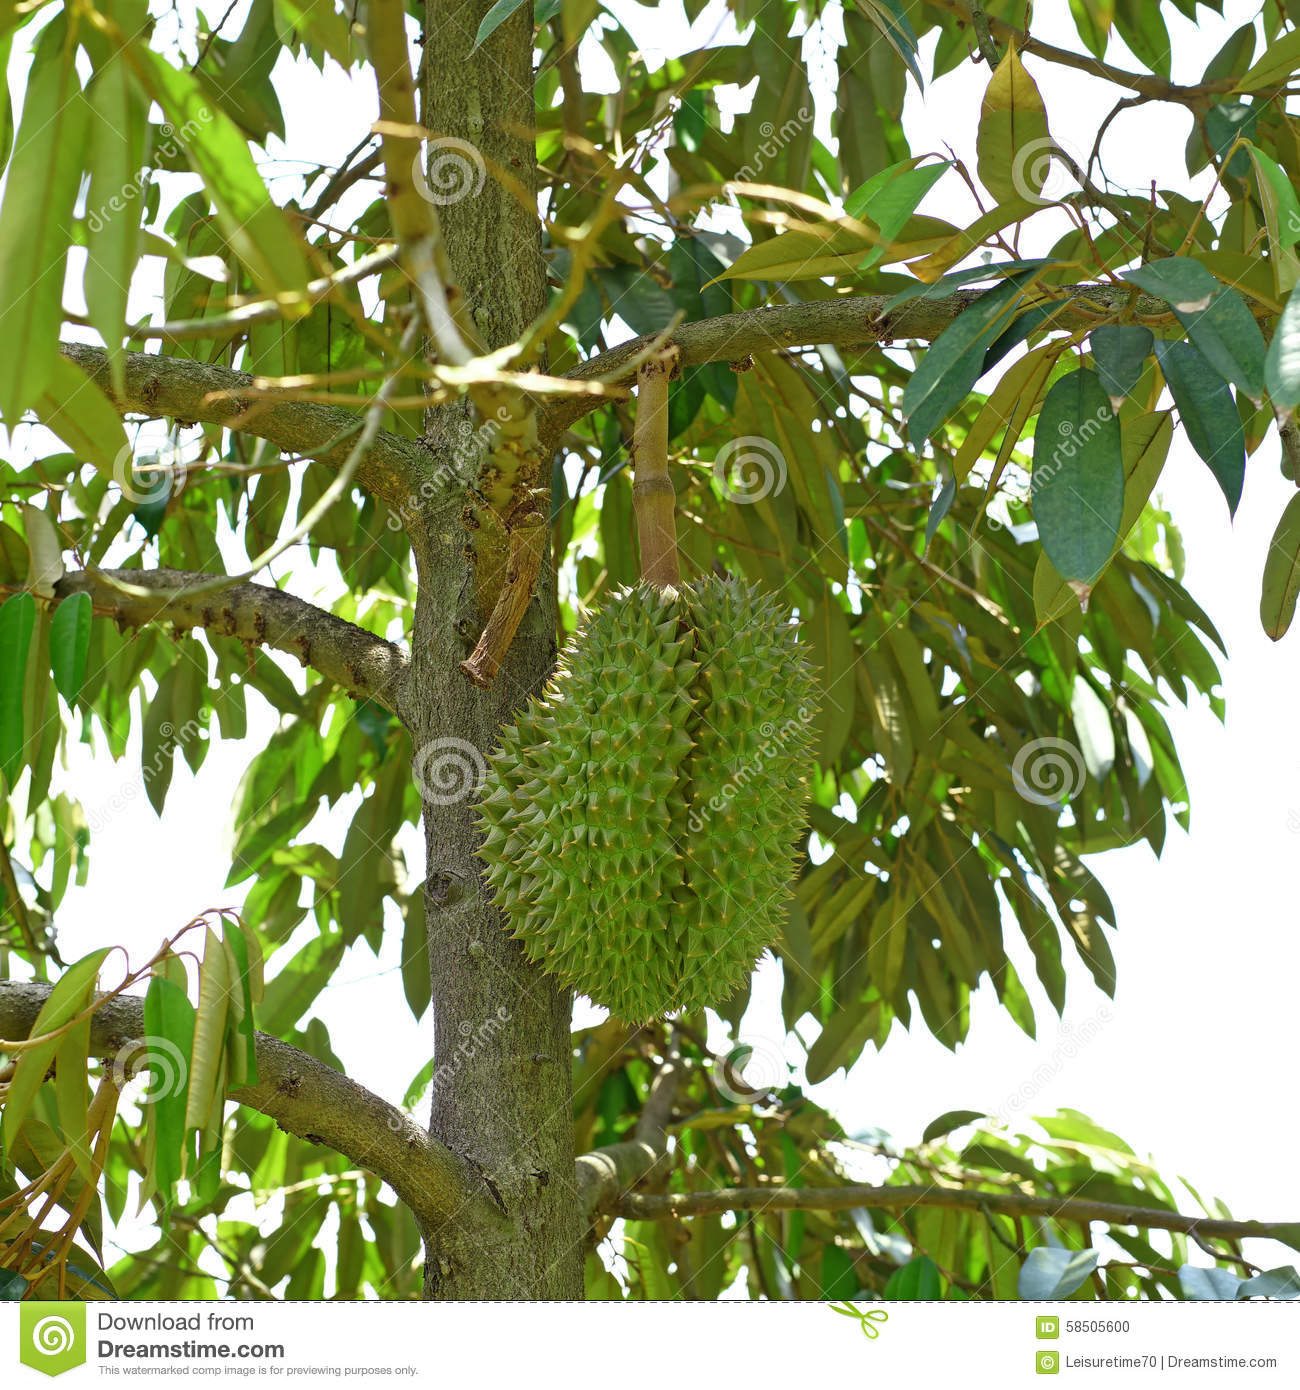 Young Durian On Durian Tree Stock Photo - Image of juicy